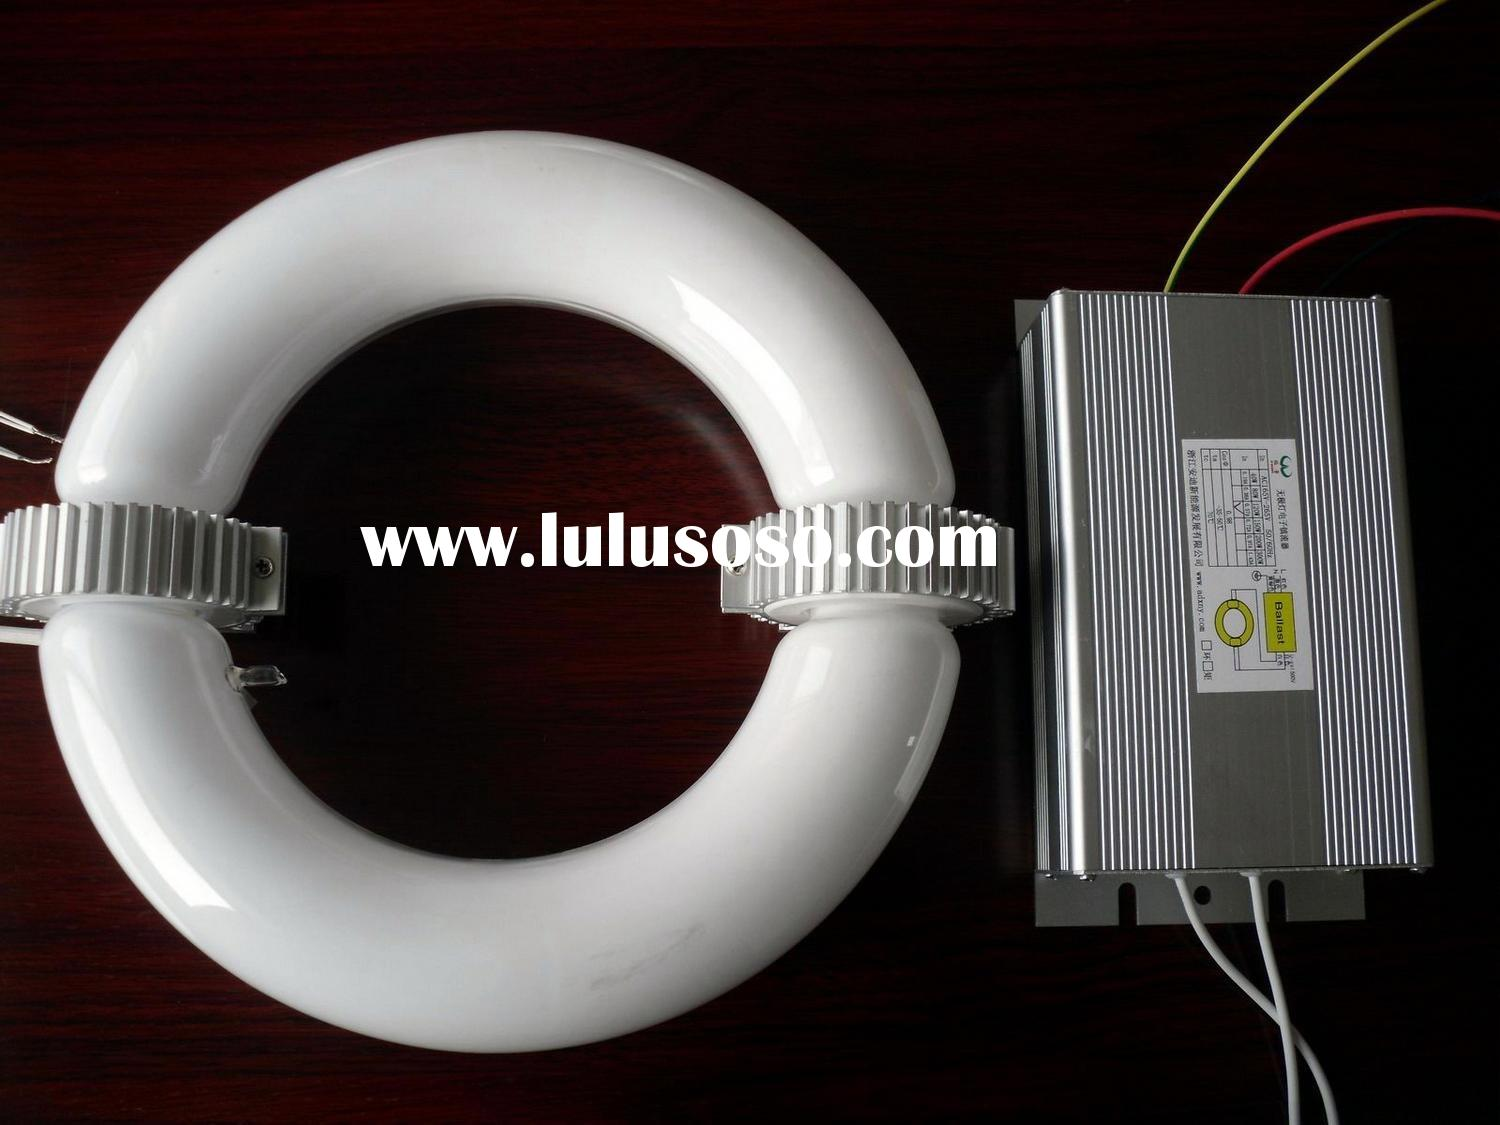 Low frequency C14 induction lamp